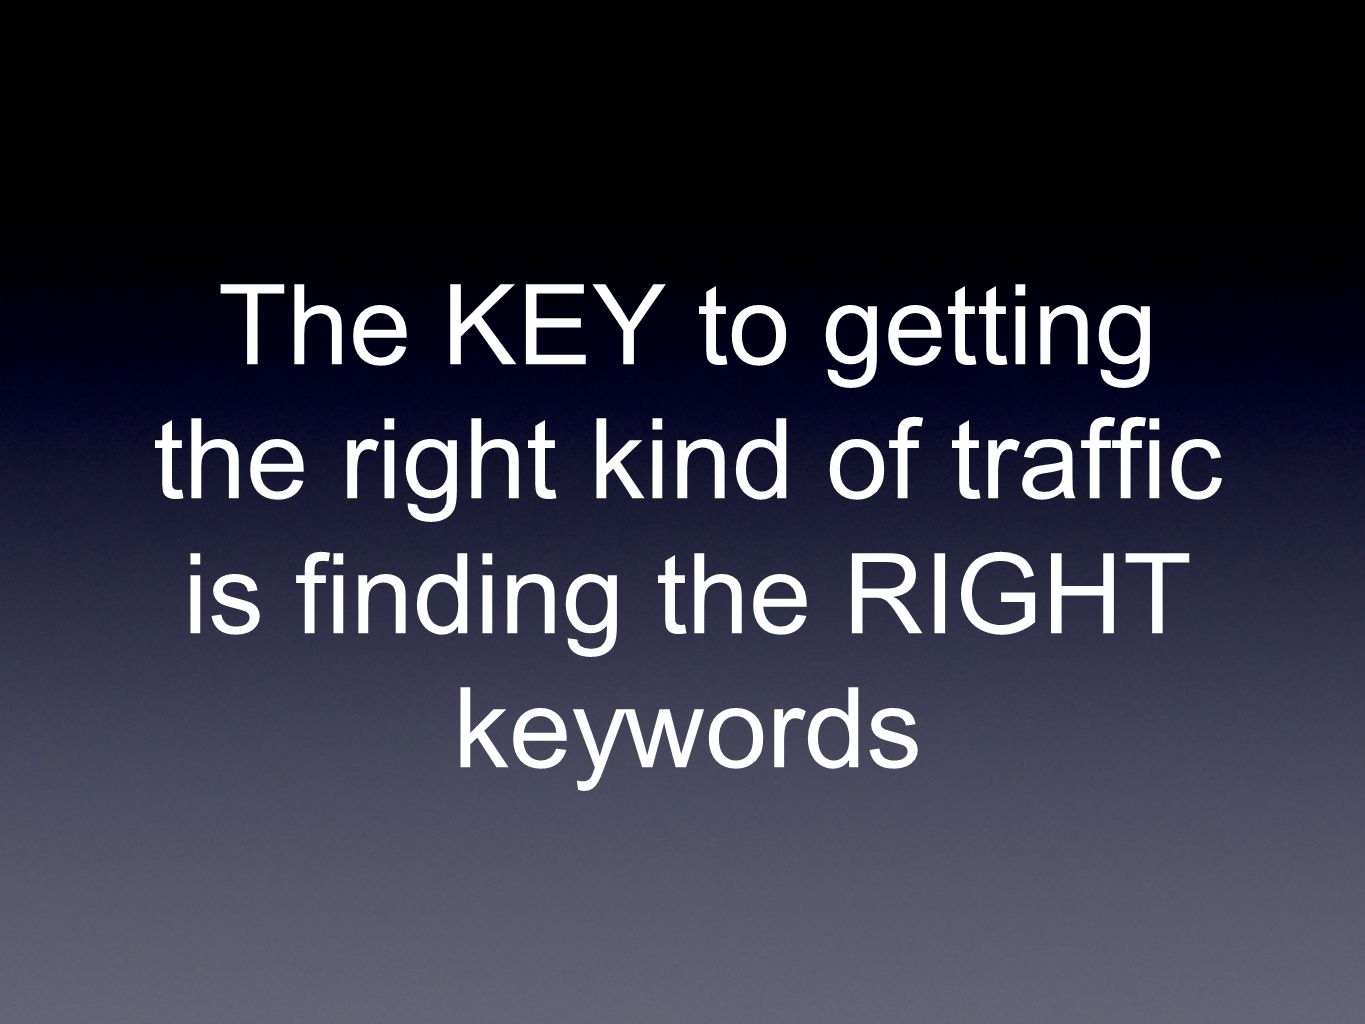 The KEY to getting the right kind of traffic is finding the RIGHT keywords